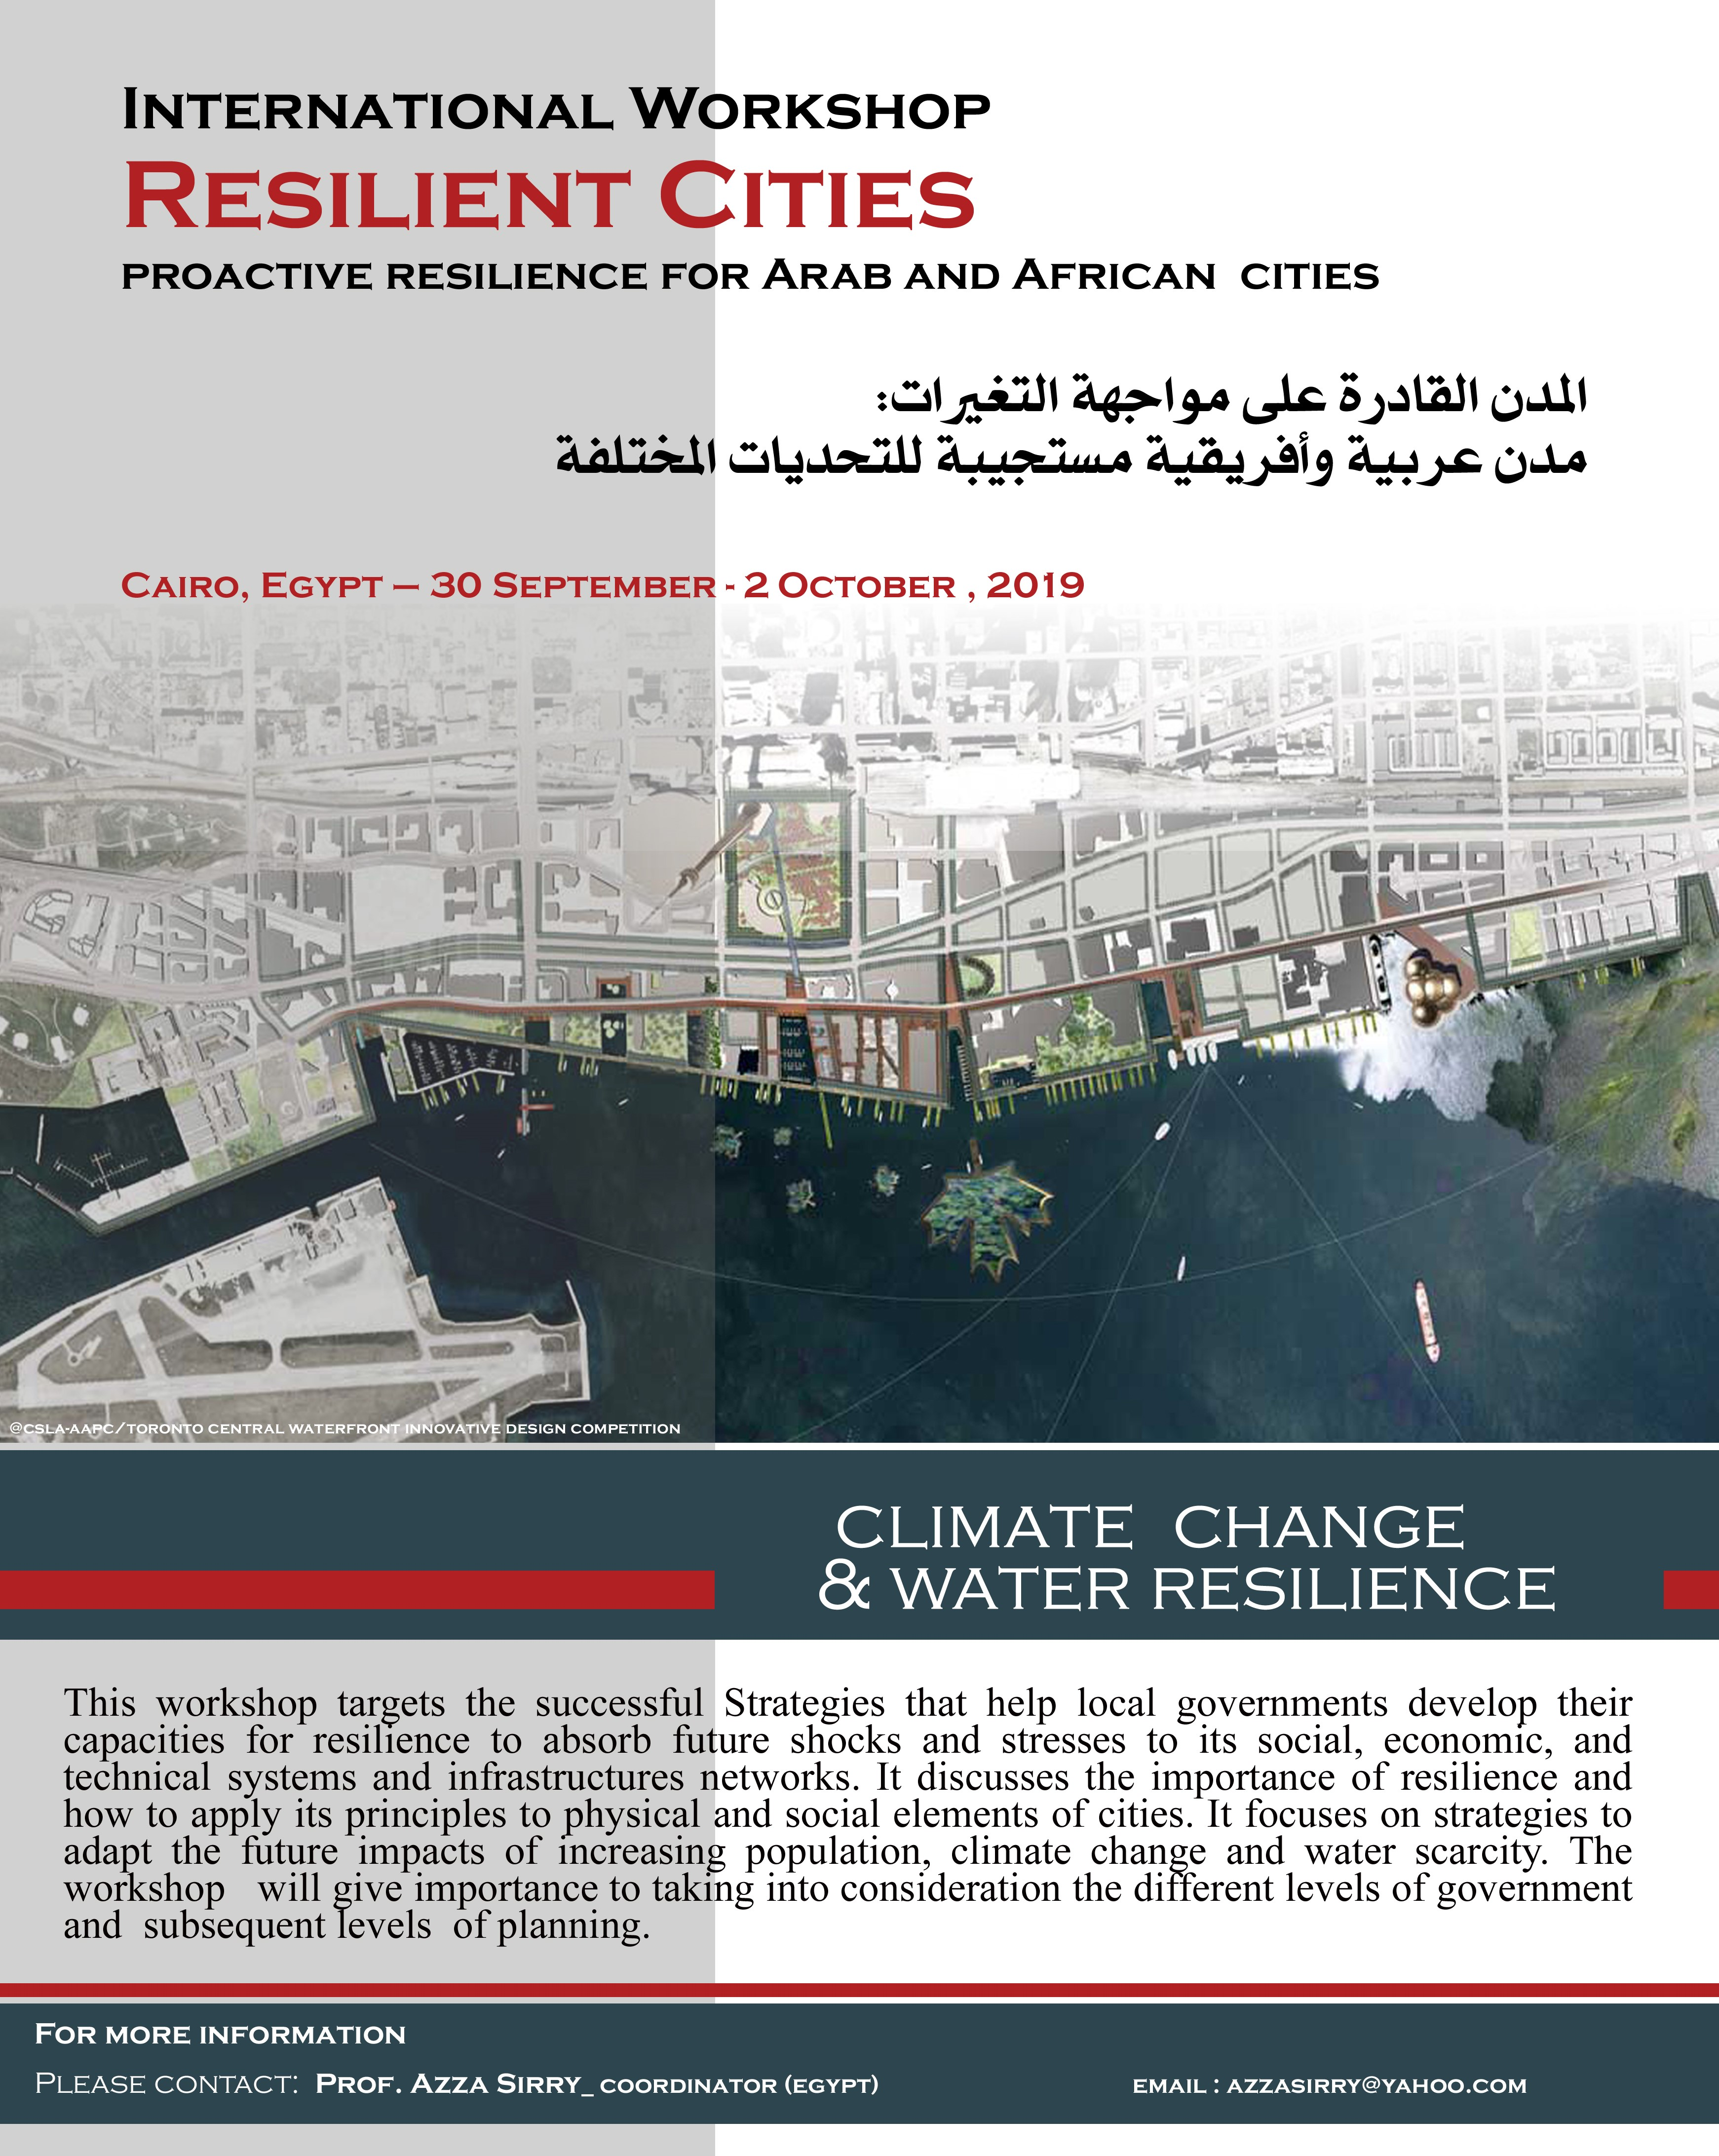 Resilient-cities-workshop-cairo-2019